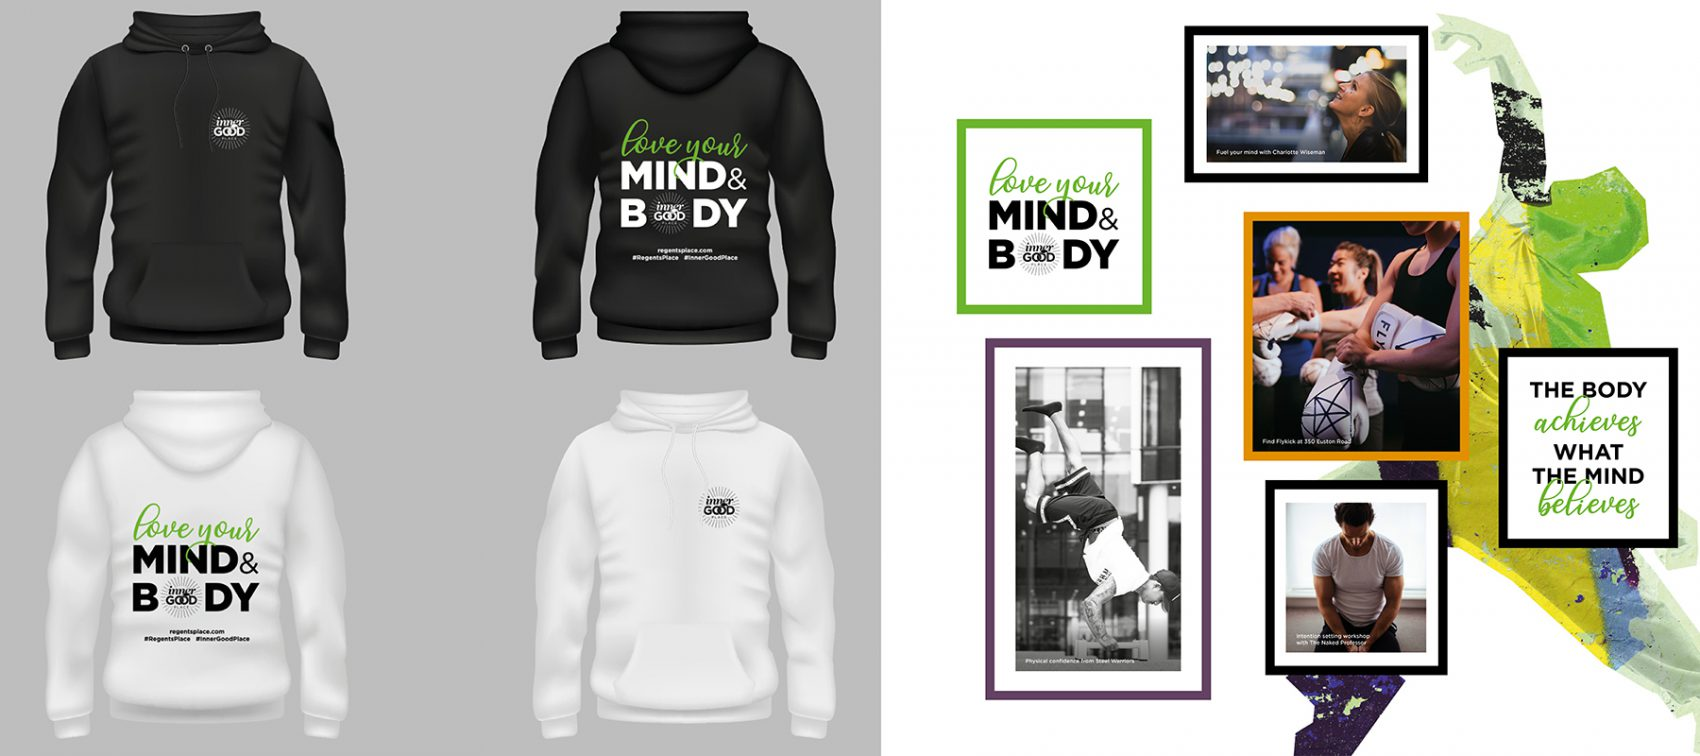 Regent's Place London Green Film Festival Mind & Body Clothing & Posters